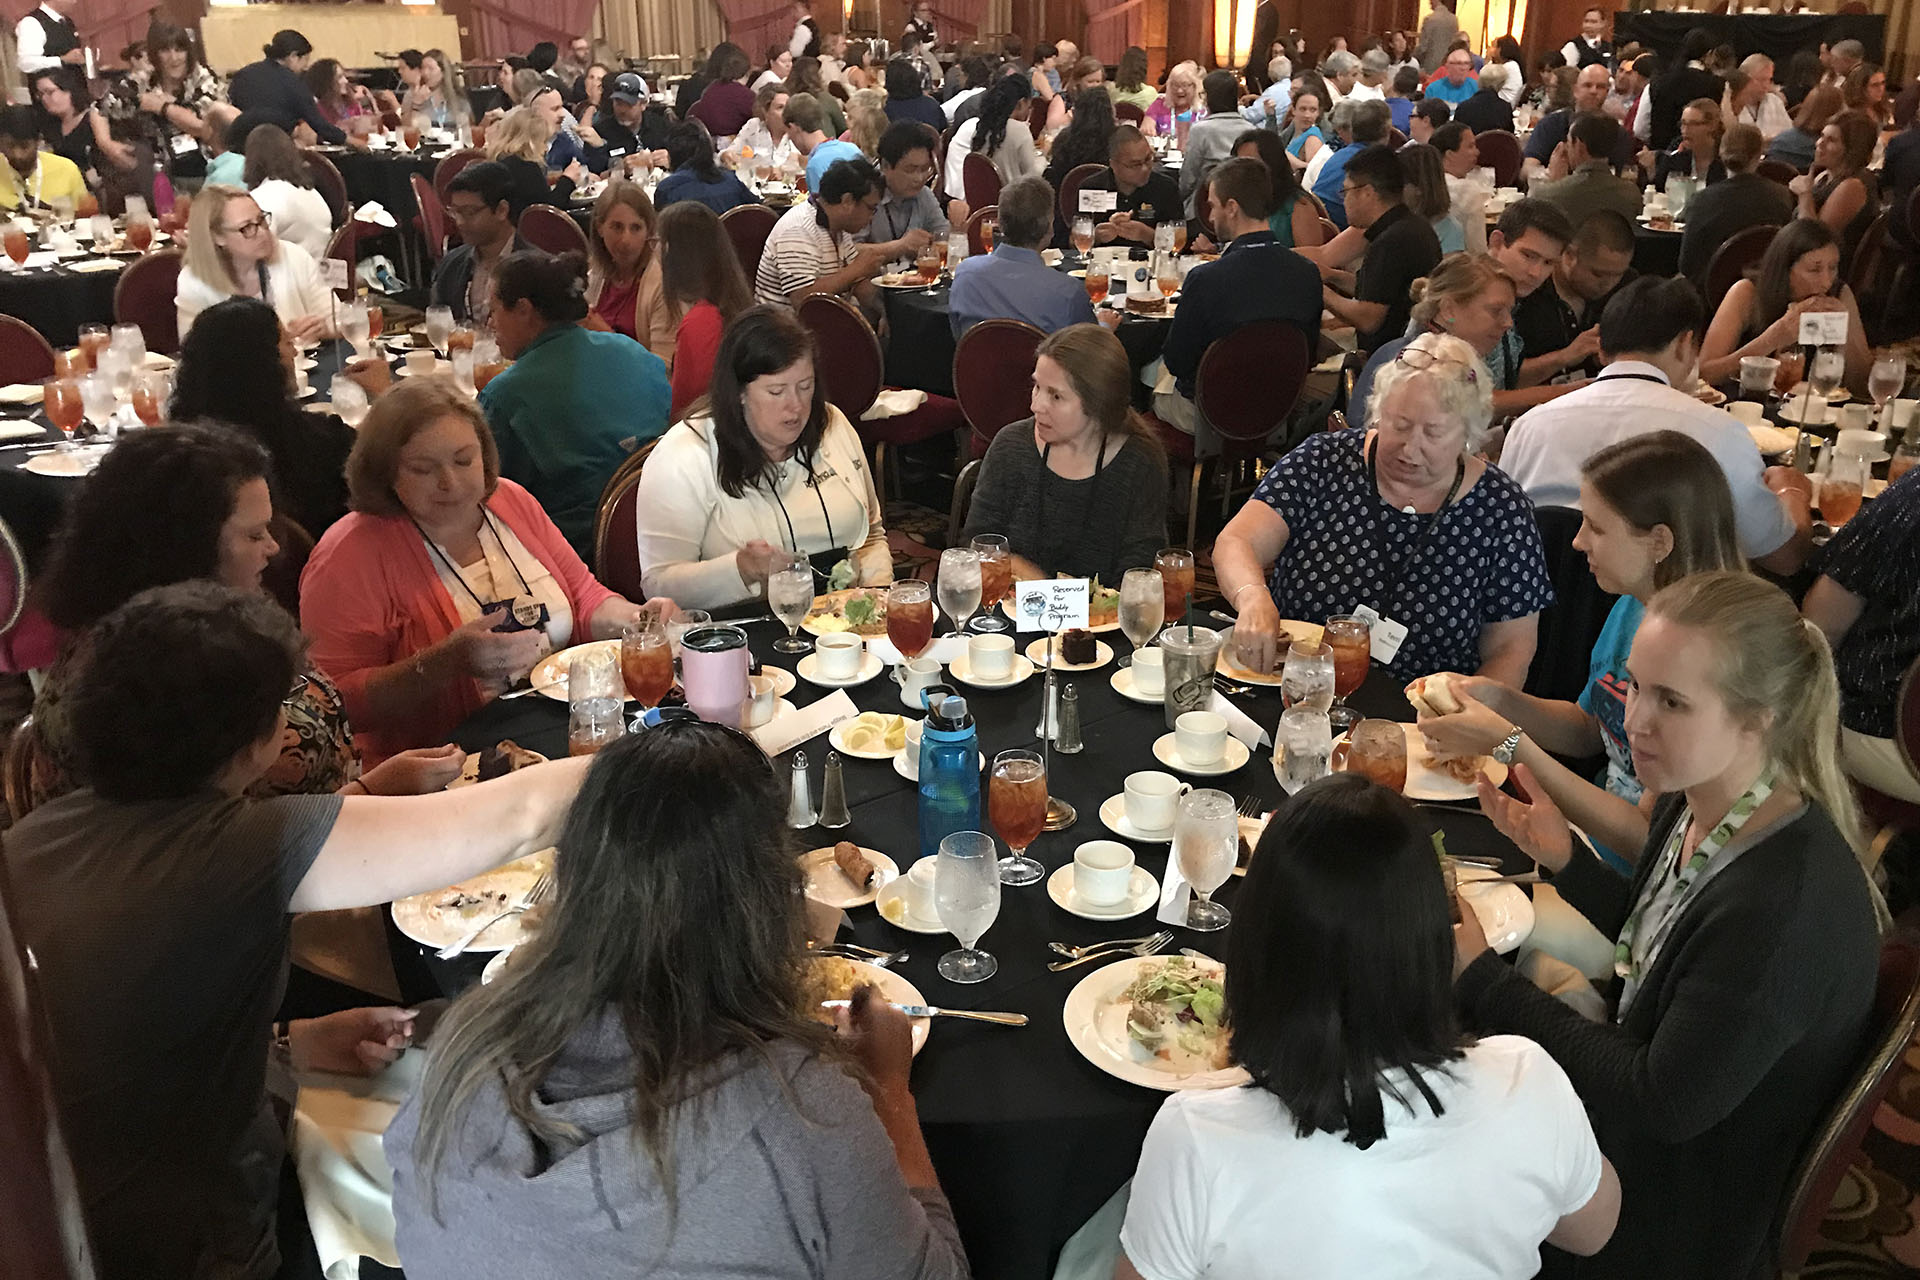 2018 Buddy Lunch in Long Beach, CA